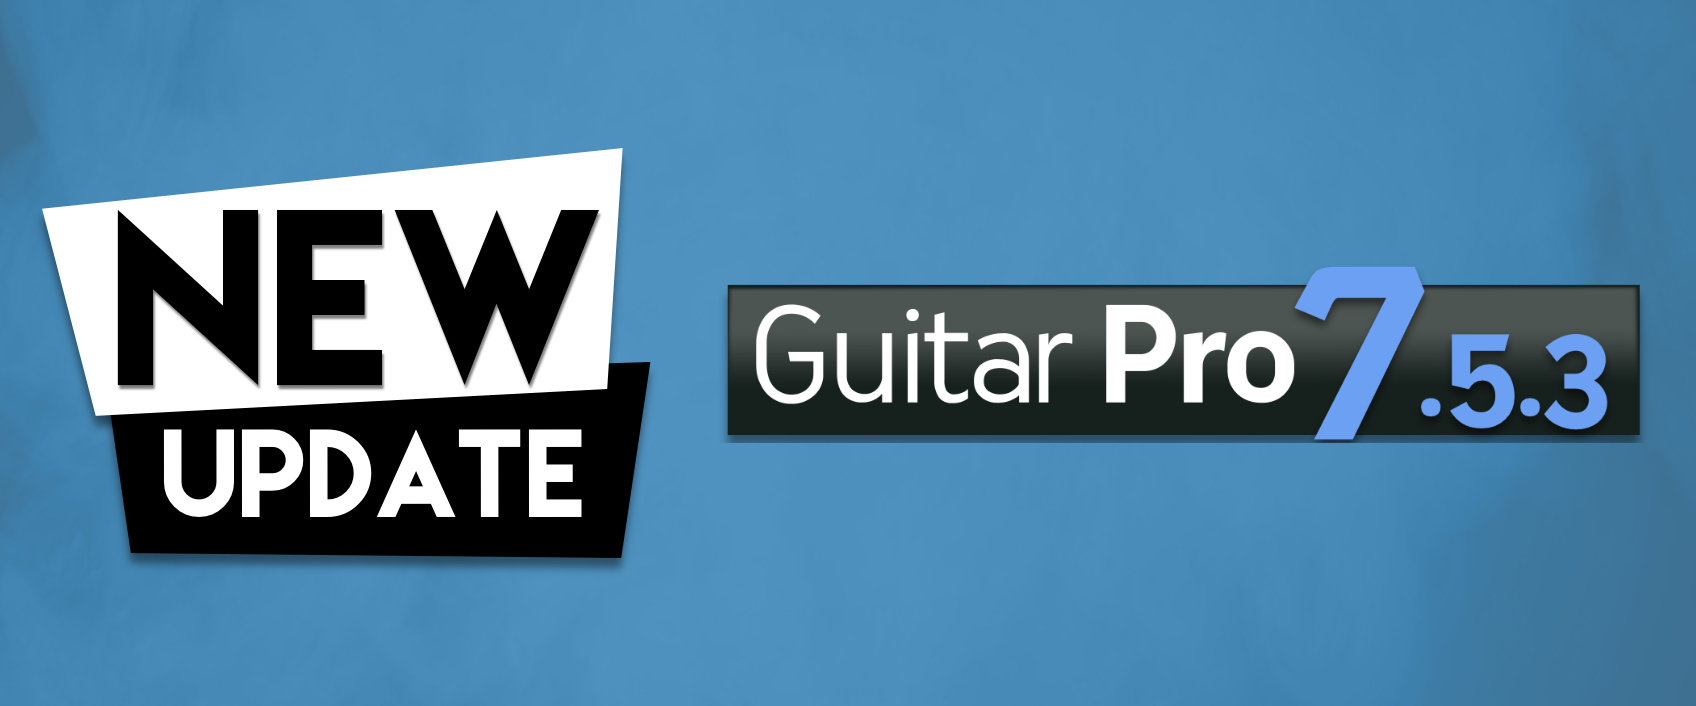 Guitar Pro 7.5.3 is available